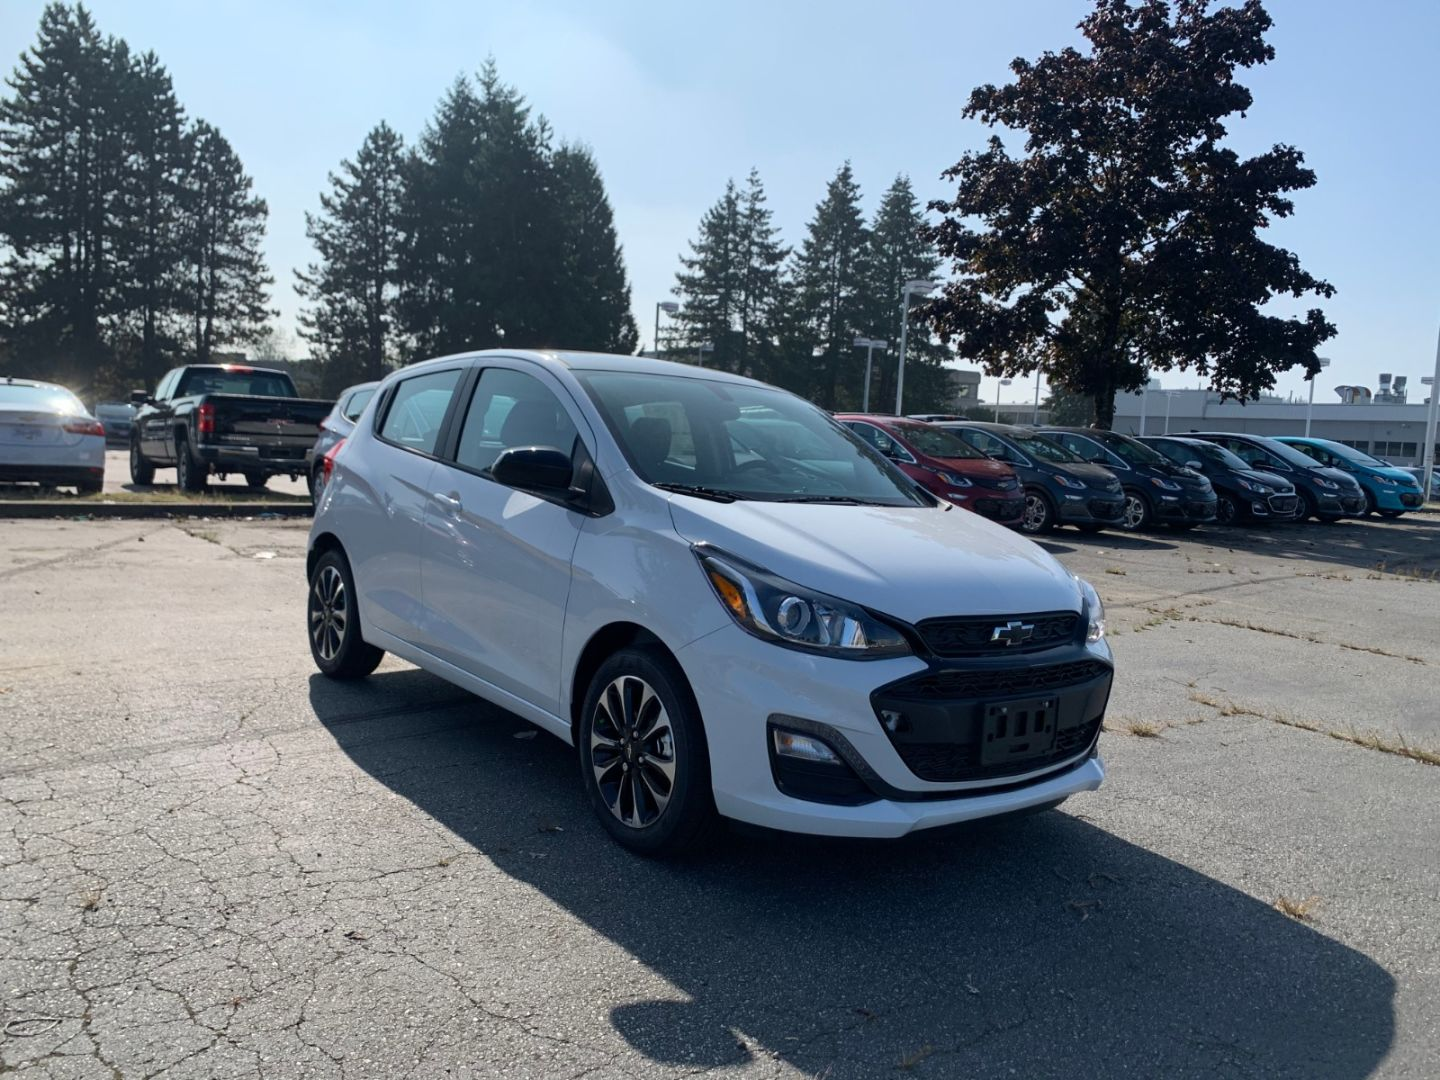 2020 Chevrolet Spark LT for sale in Surrey, British Columbia